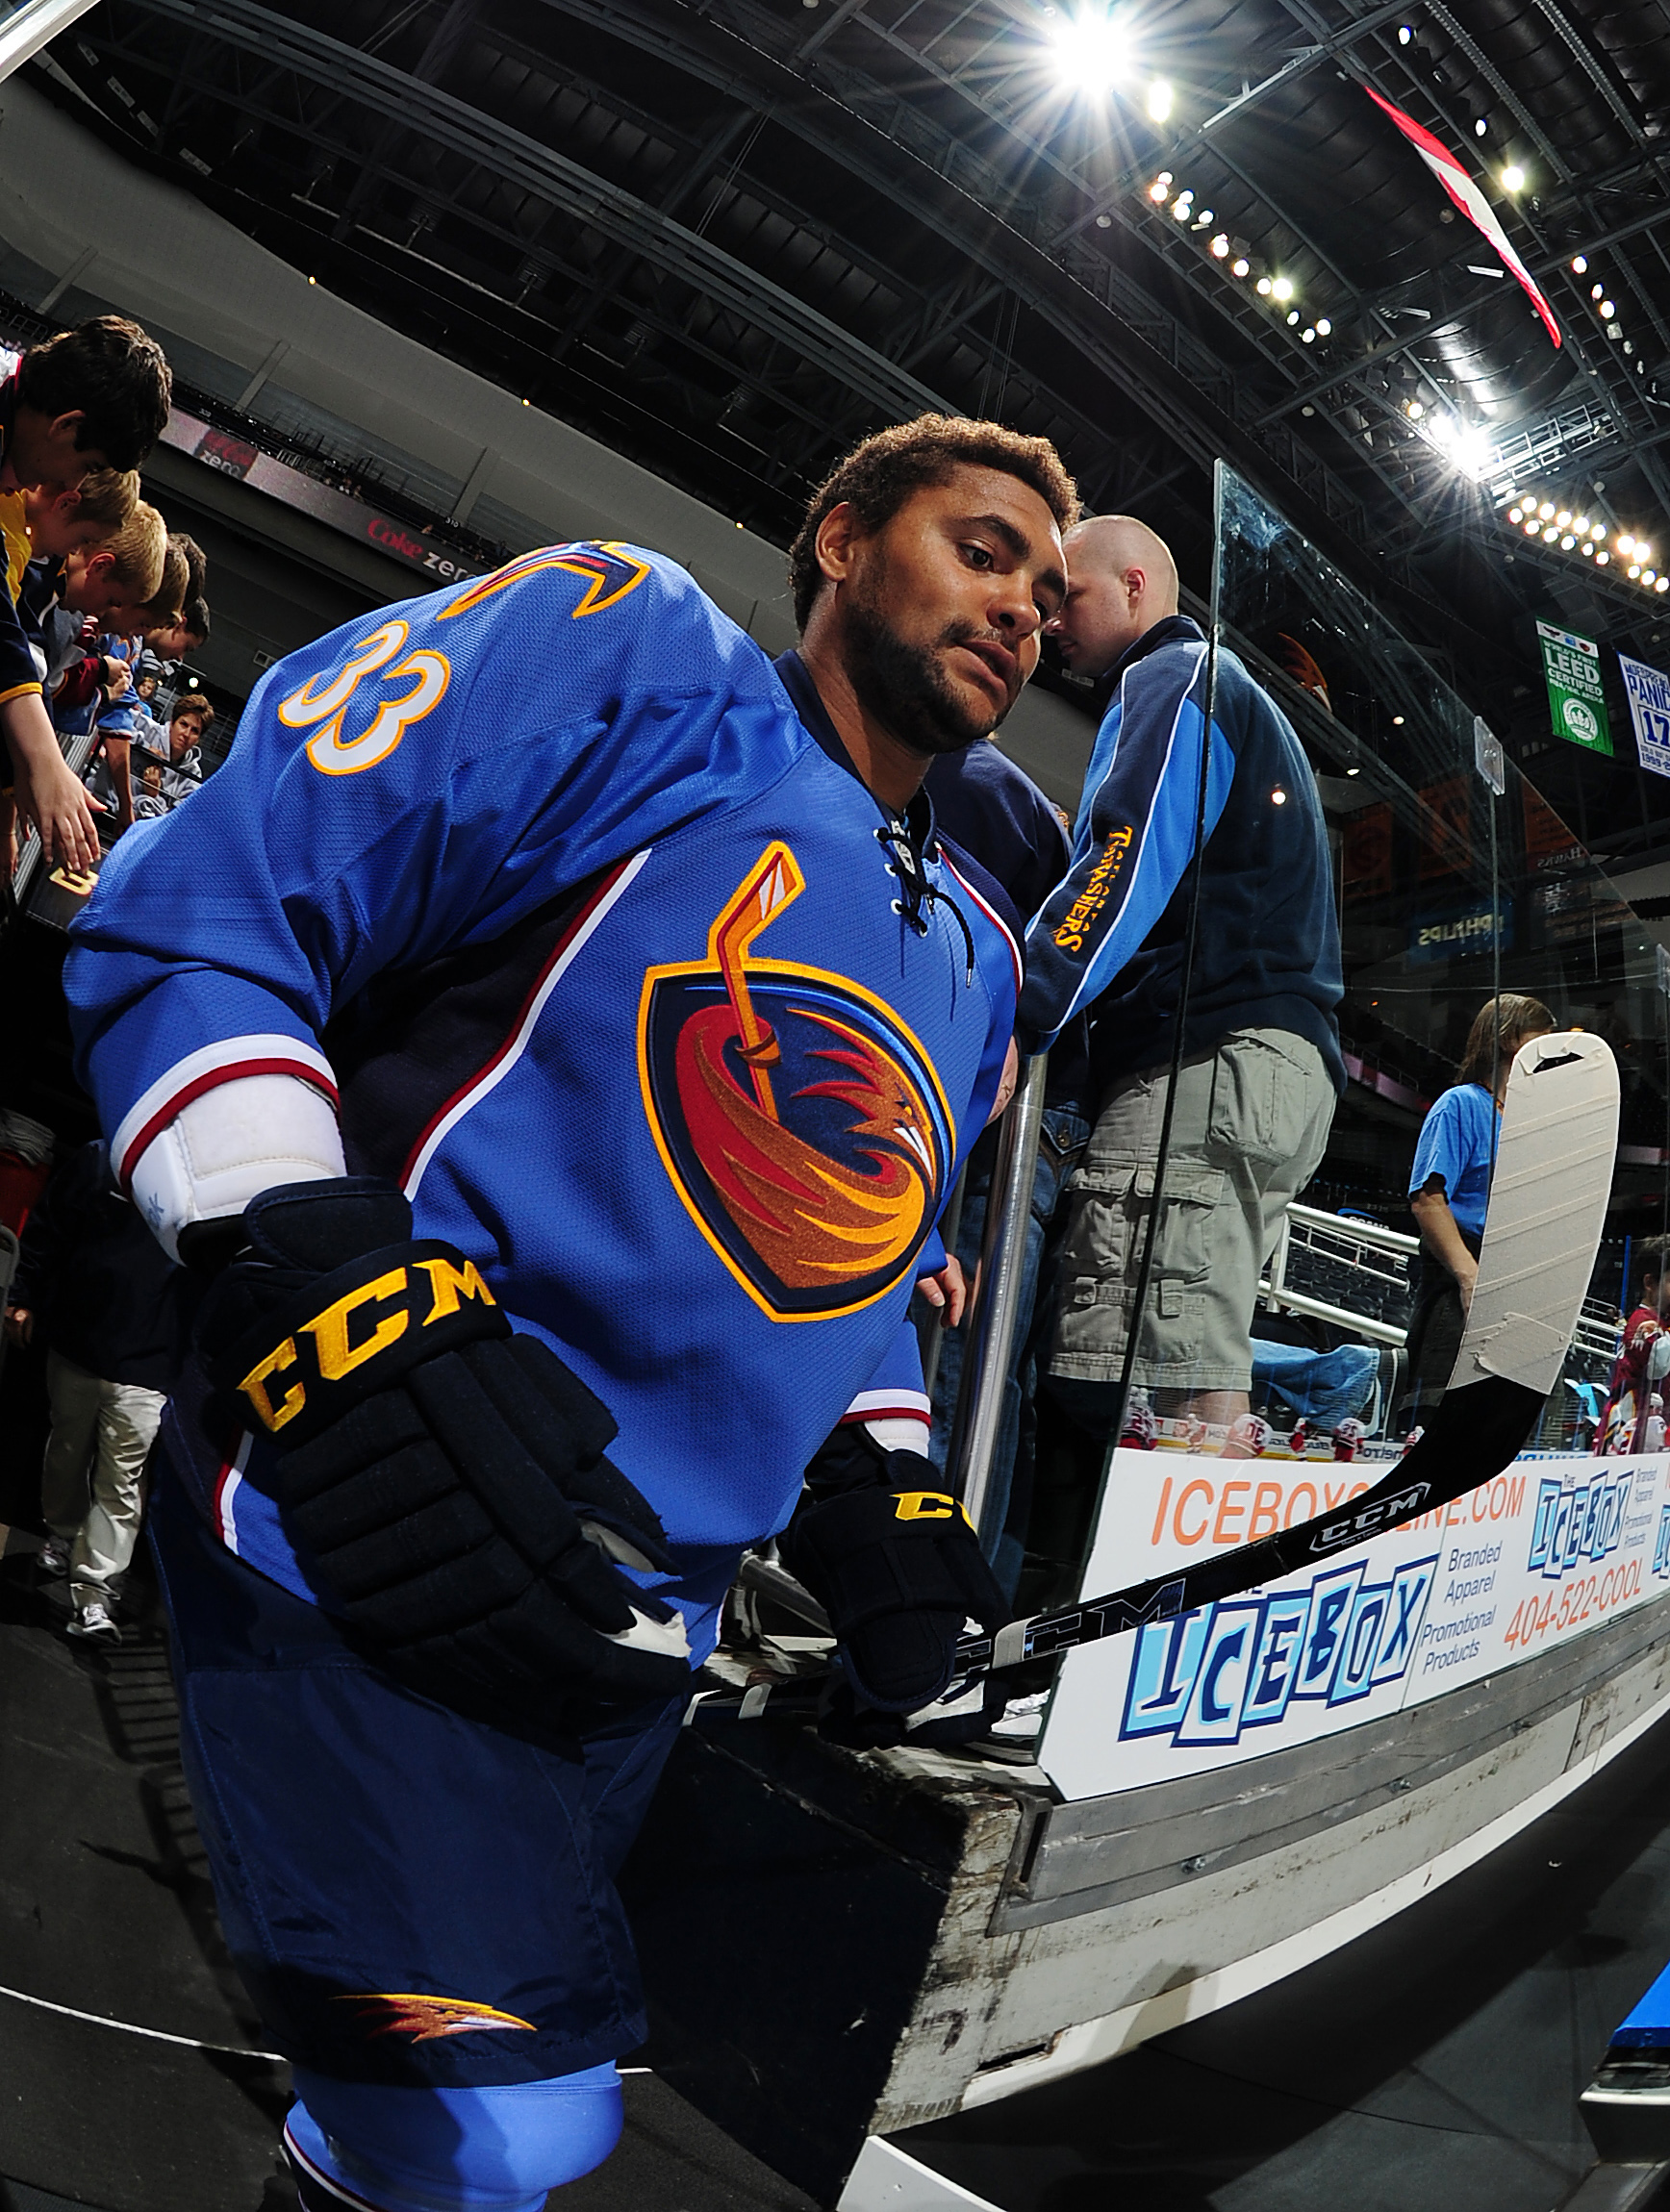 ATLANTA - SEPTEMBER 25: Dustin Byfuglien #33 of the Atlanta Thrashers heads to the ice to play against the Carolina Hurricanes at Philips Arena on September 25, 2010 in Atlanta, Georgia. (Photo by Scott Cunningham/Getty Images)